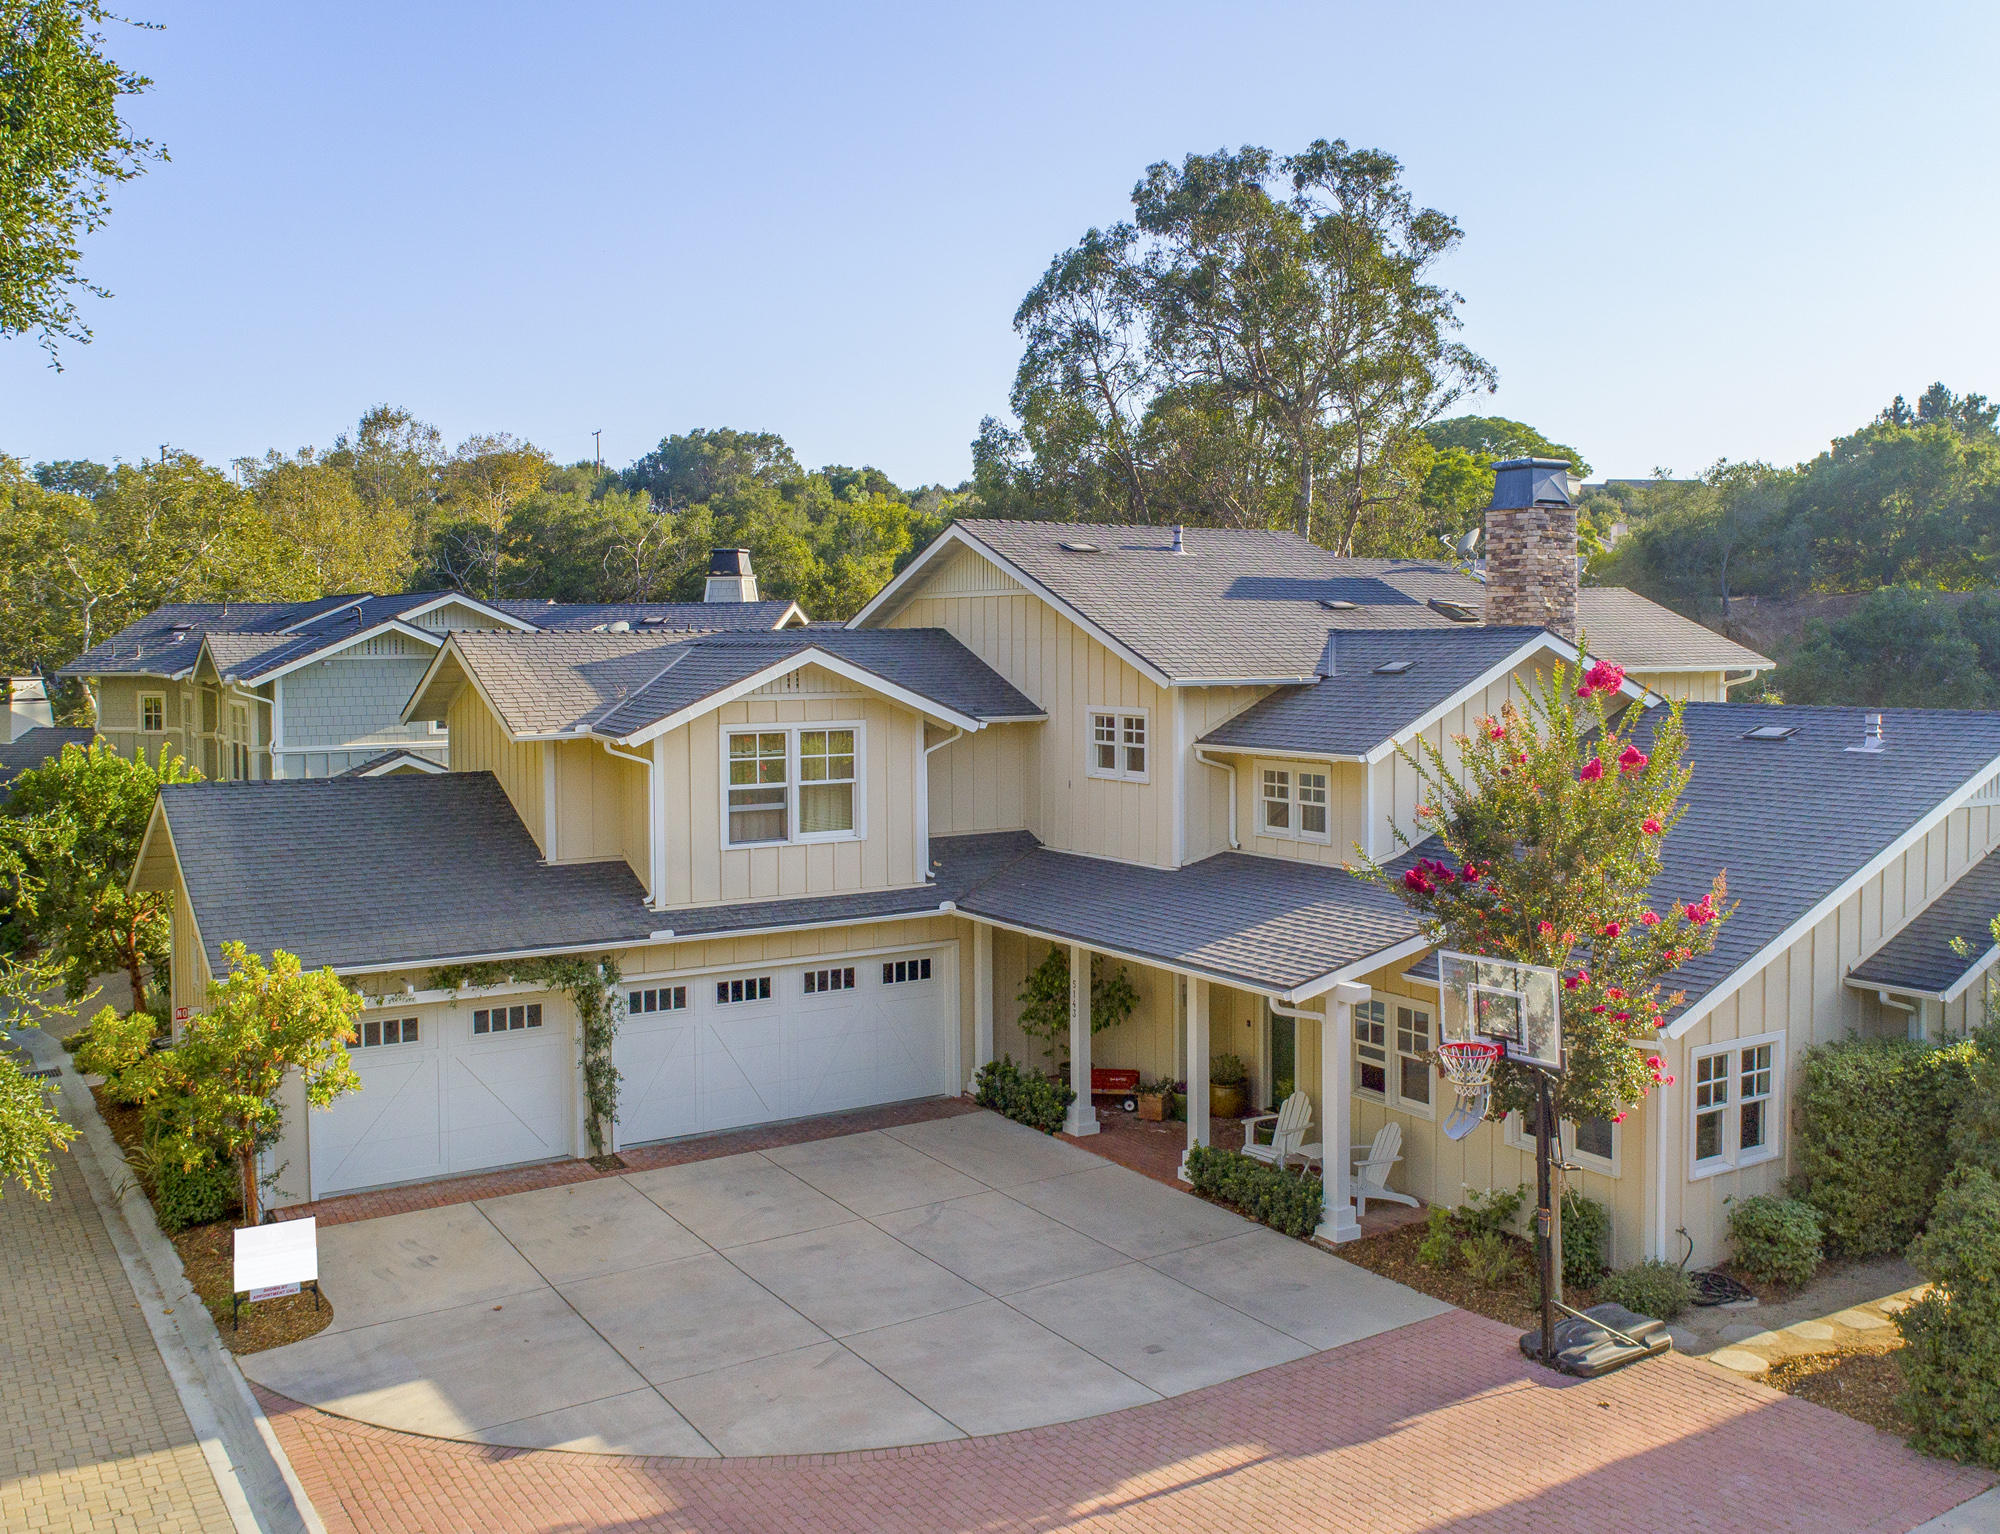 Property photo for 5143 Cathedral Oaks Rd Santa Barbara, California 93111 - 17-2721